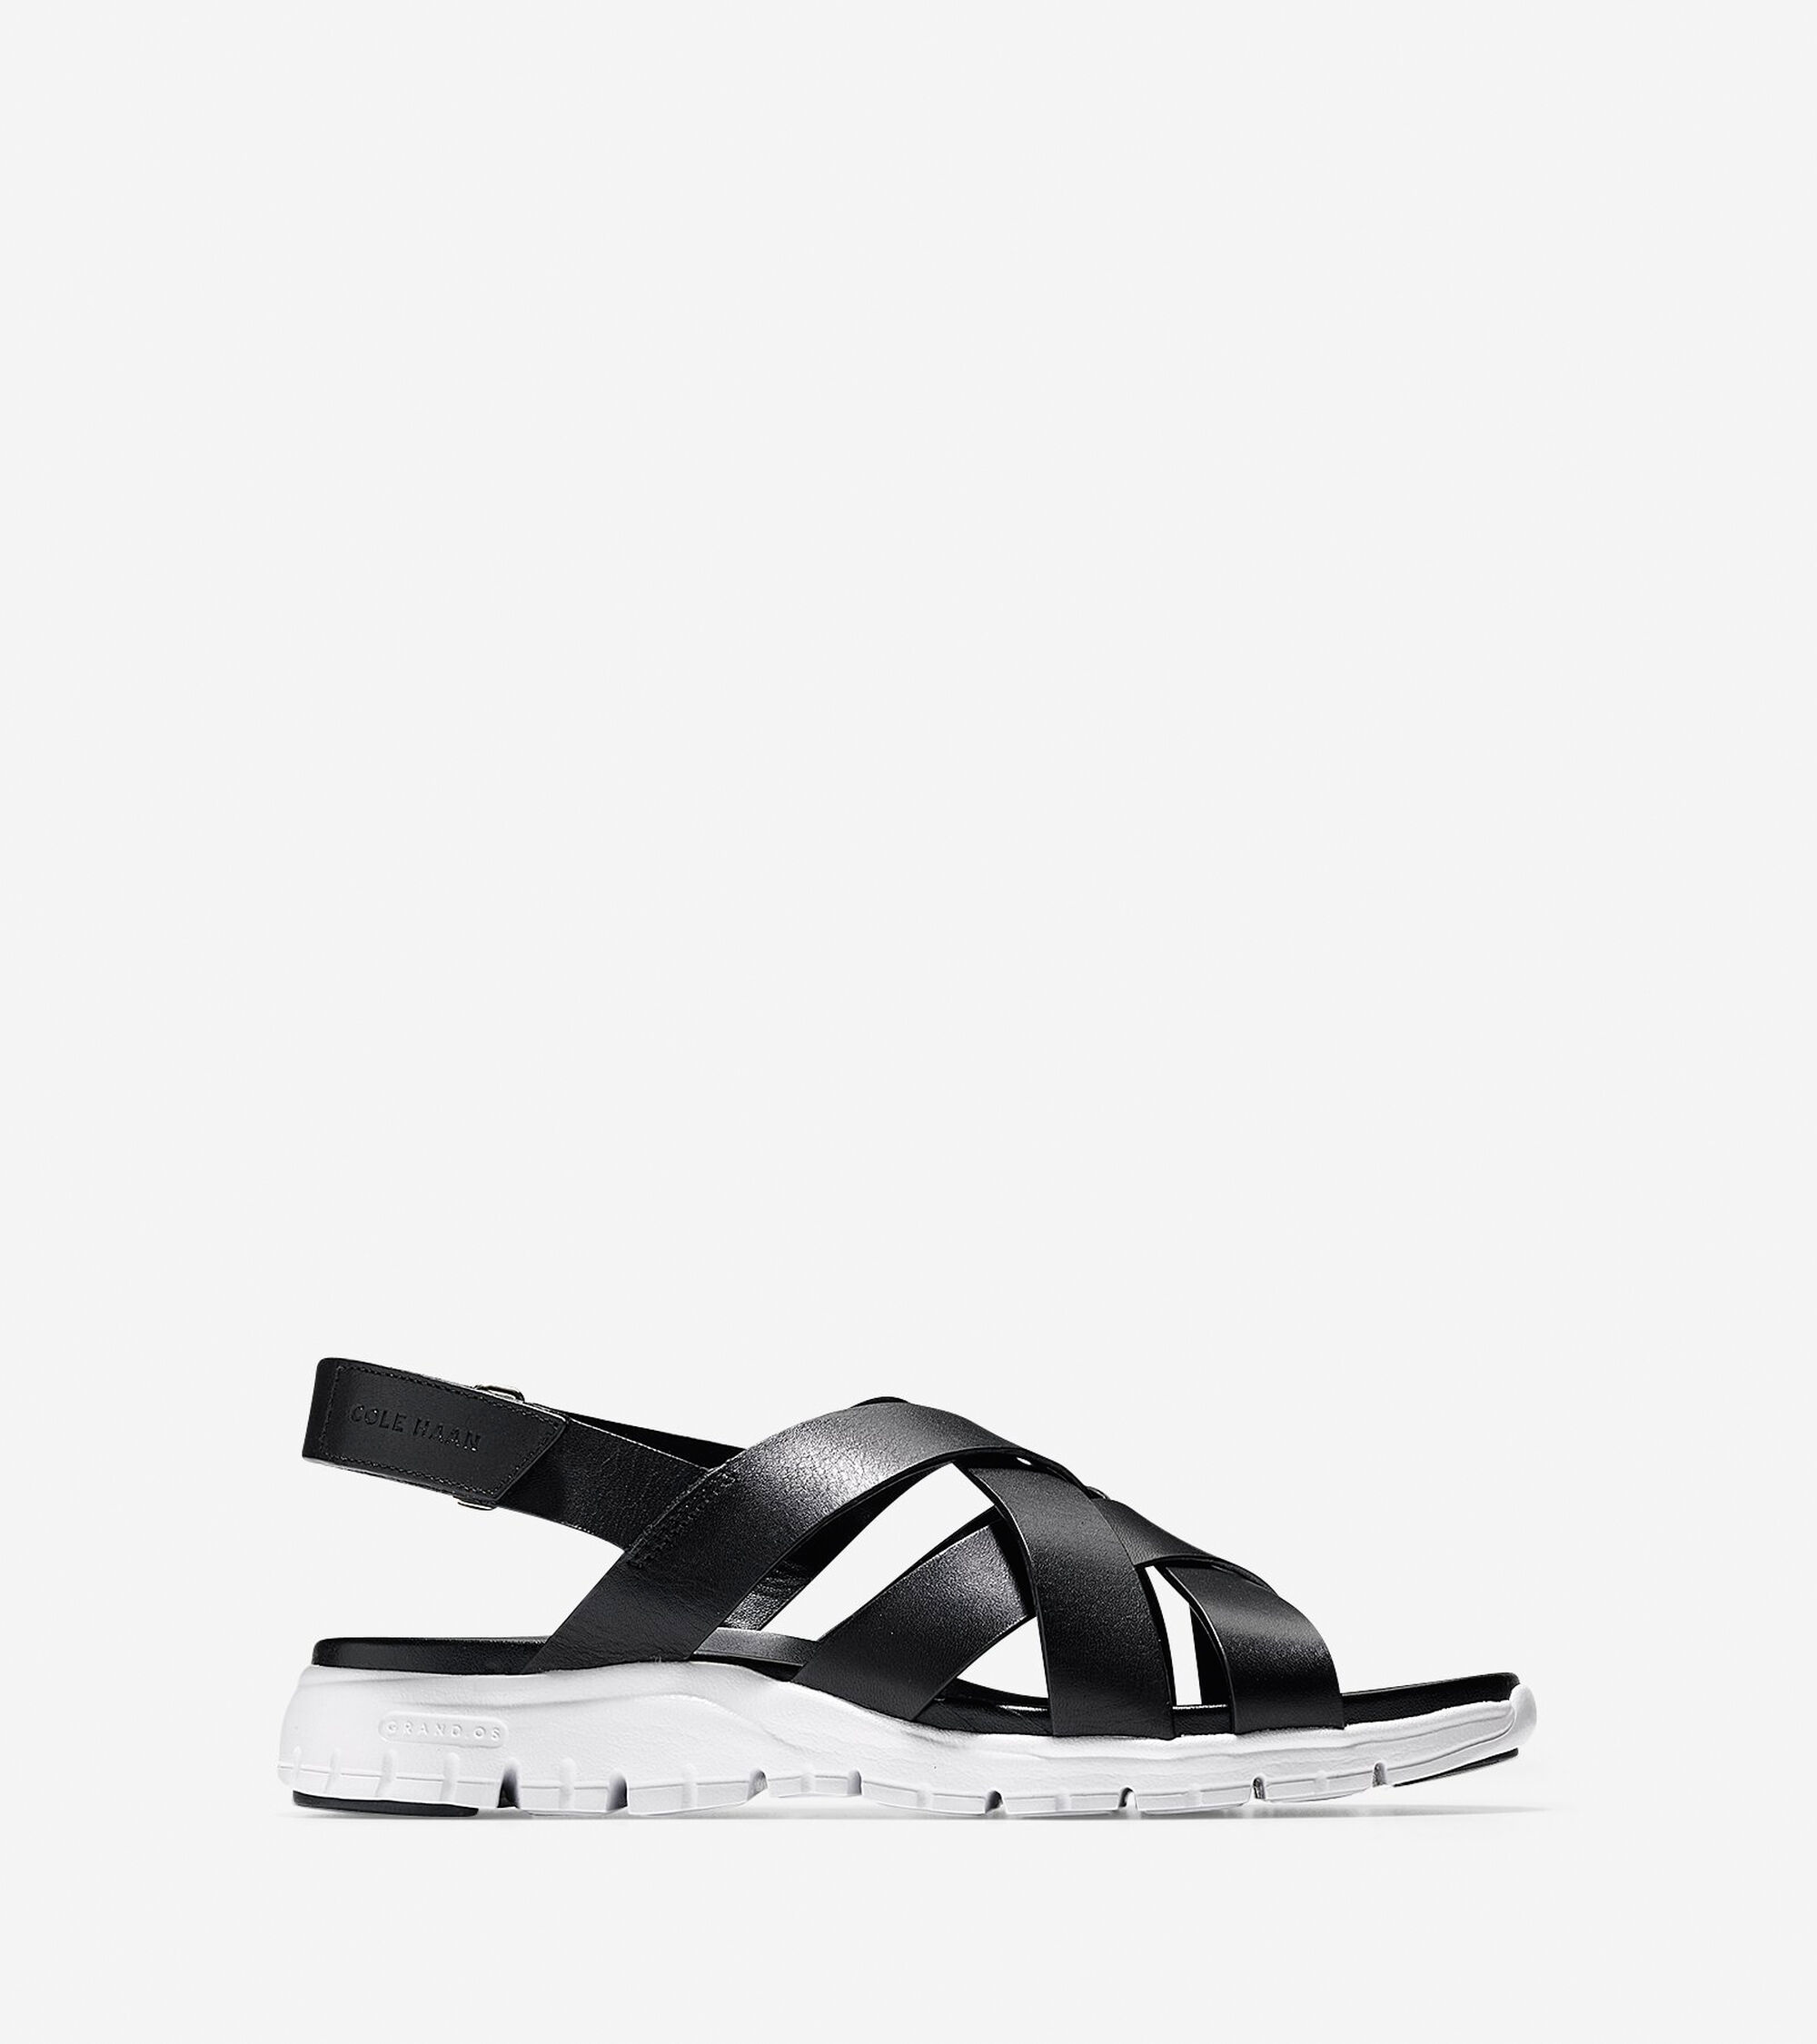 5bb6bf084f25 Women s ZEROGRAND Criss Cross Sandals in Black-White